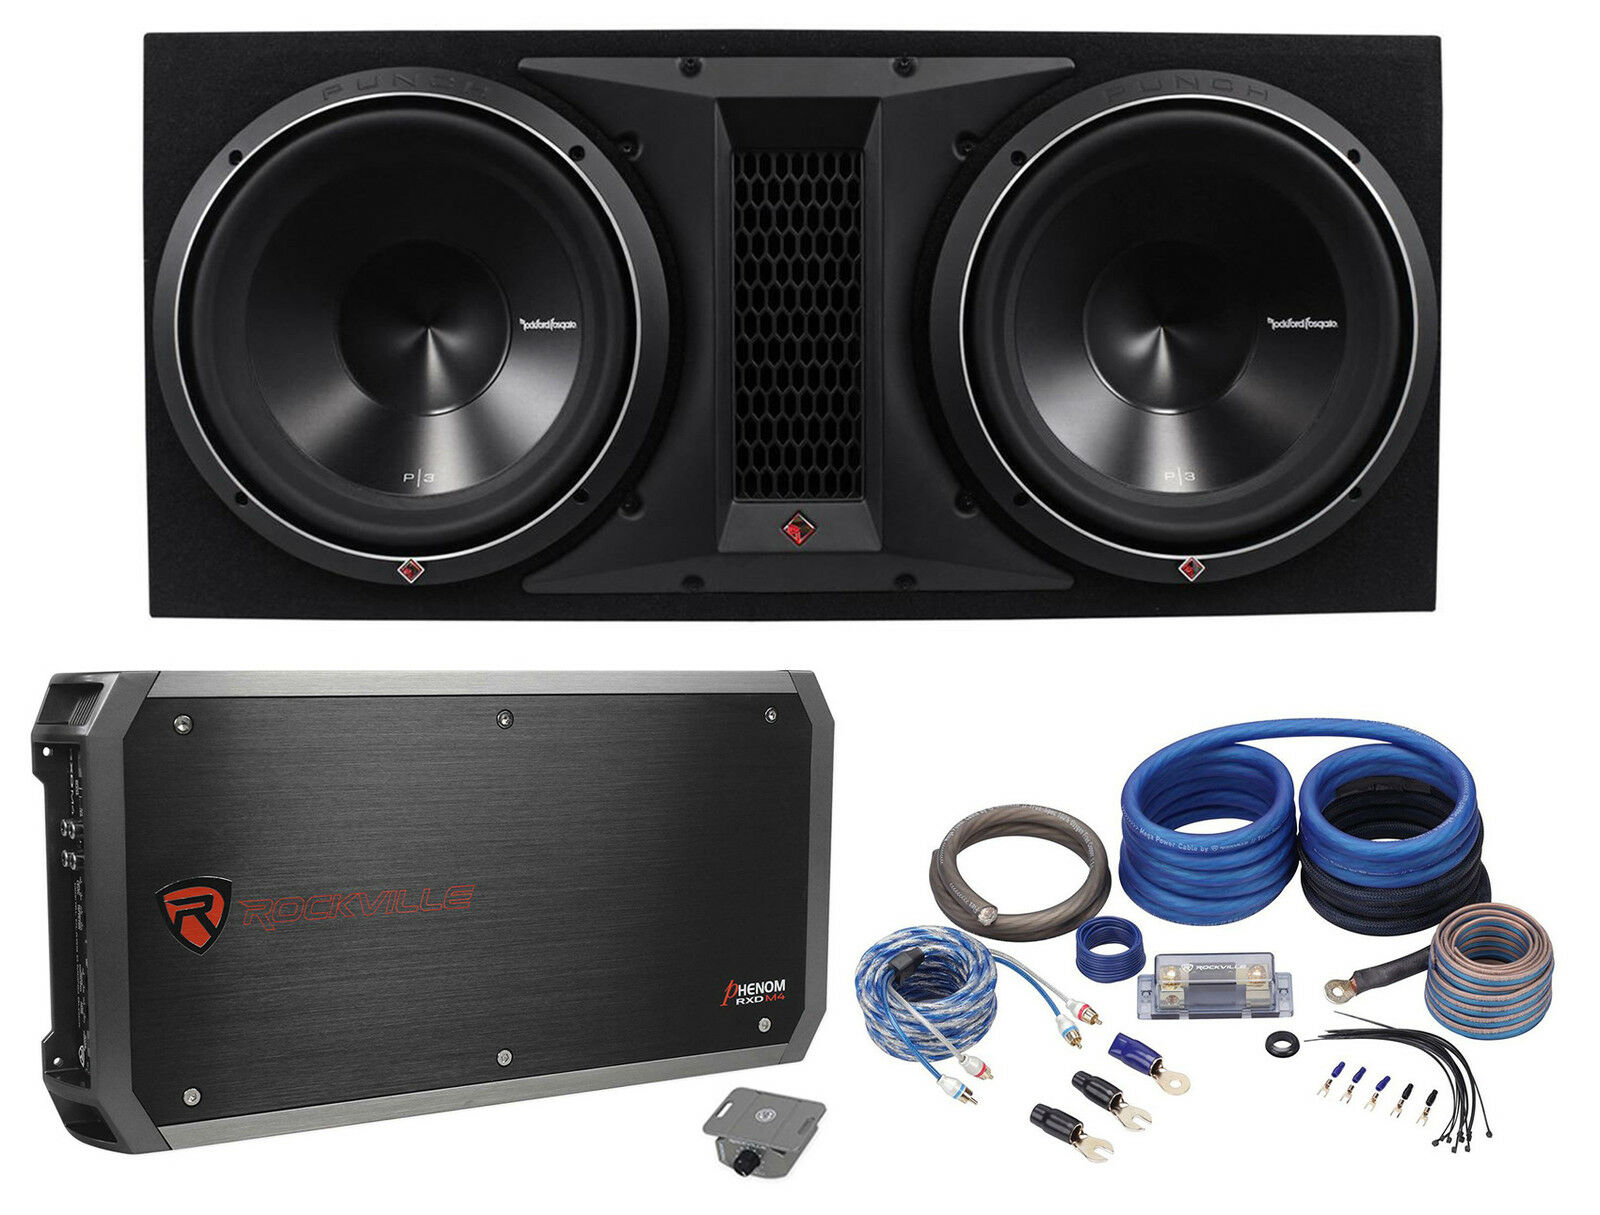 """Rockford Fosgate P3-2X12 Dual 12"""" 2400W Loaded Vented Subwoofer Box+Amp+ 1  of 10FREE Shipping Rockford Fosgate ..."""